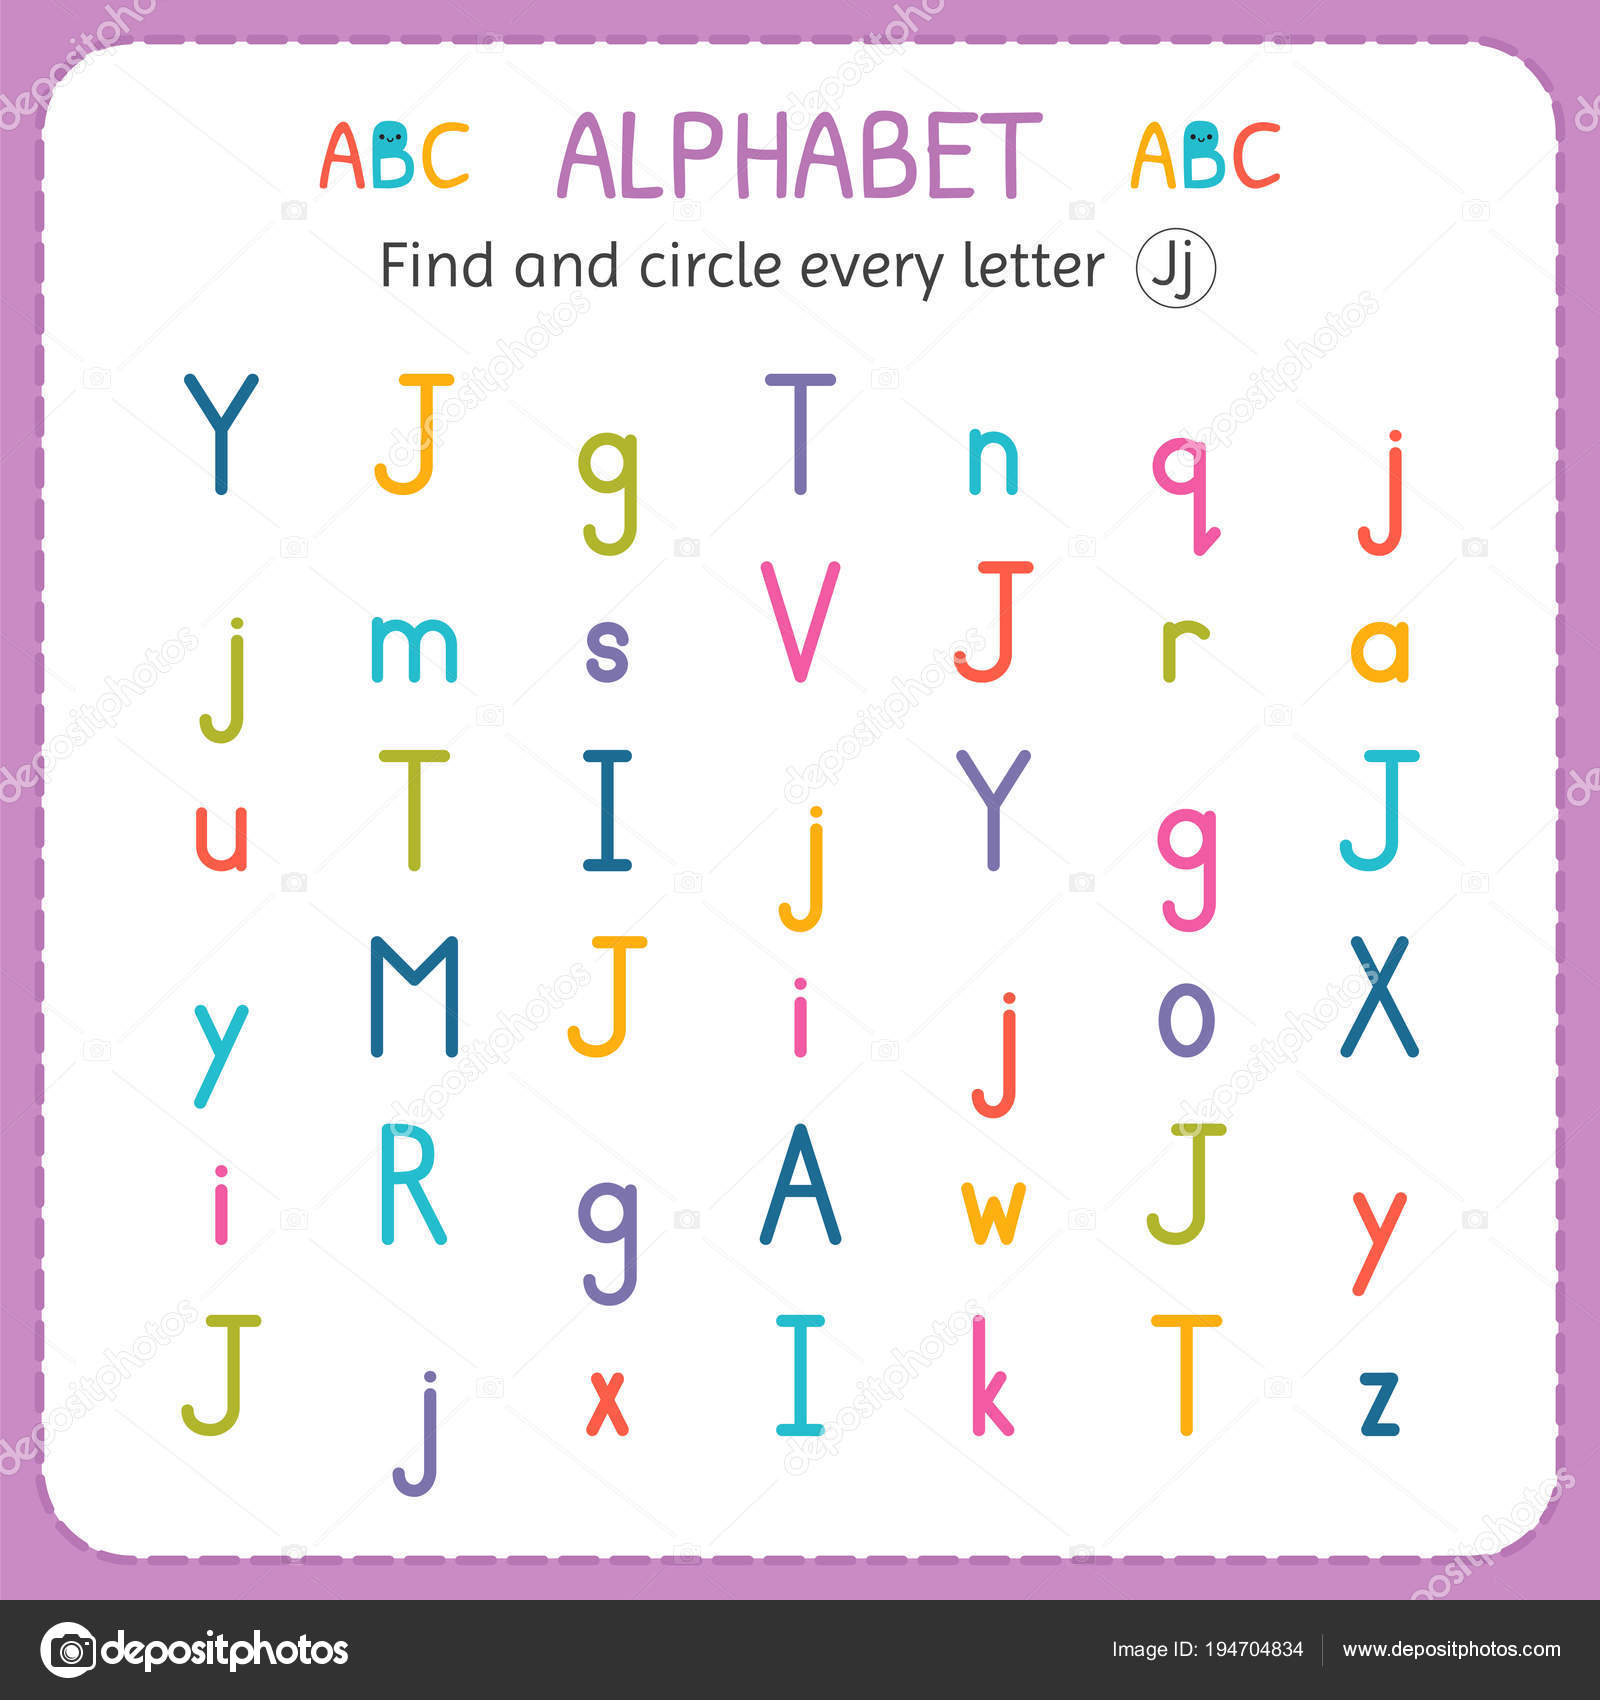 Find And Circle Every Letter J Worksheet For Kindergarten And Preschool Exercises For Children